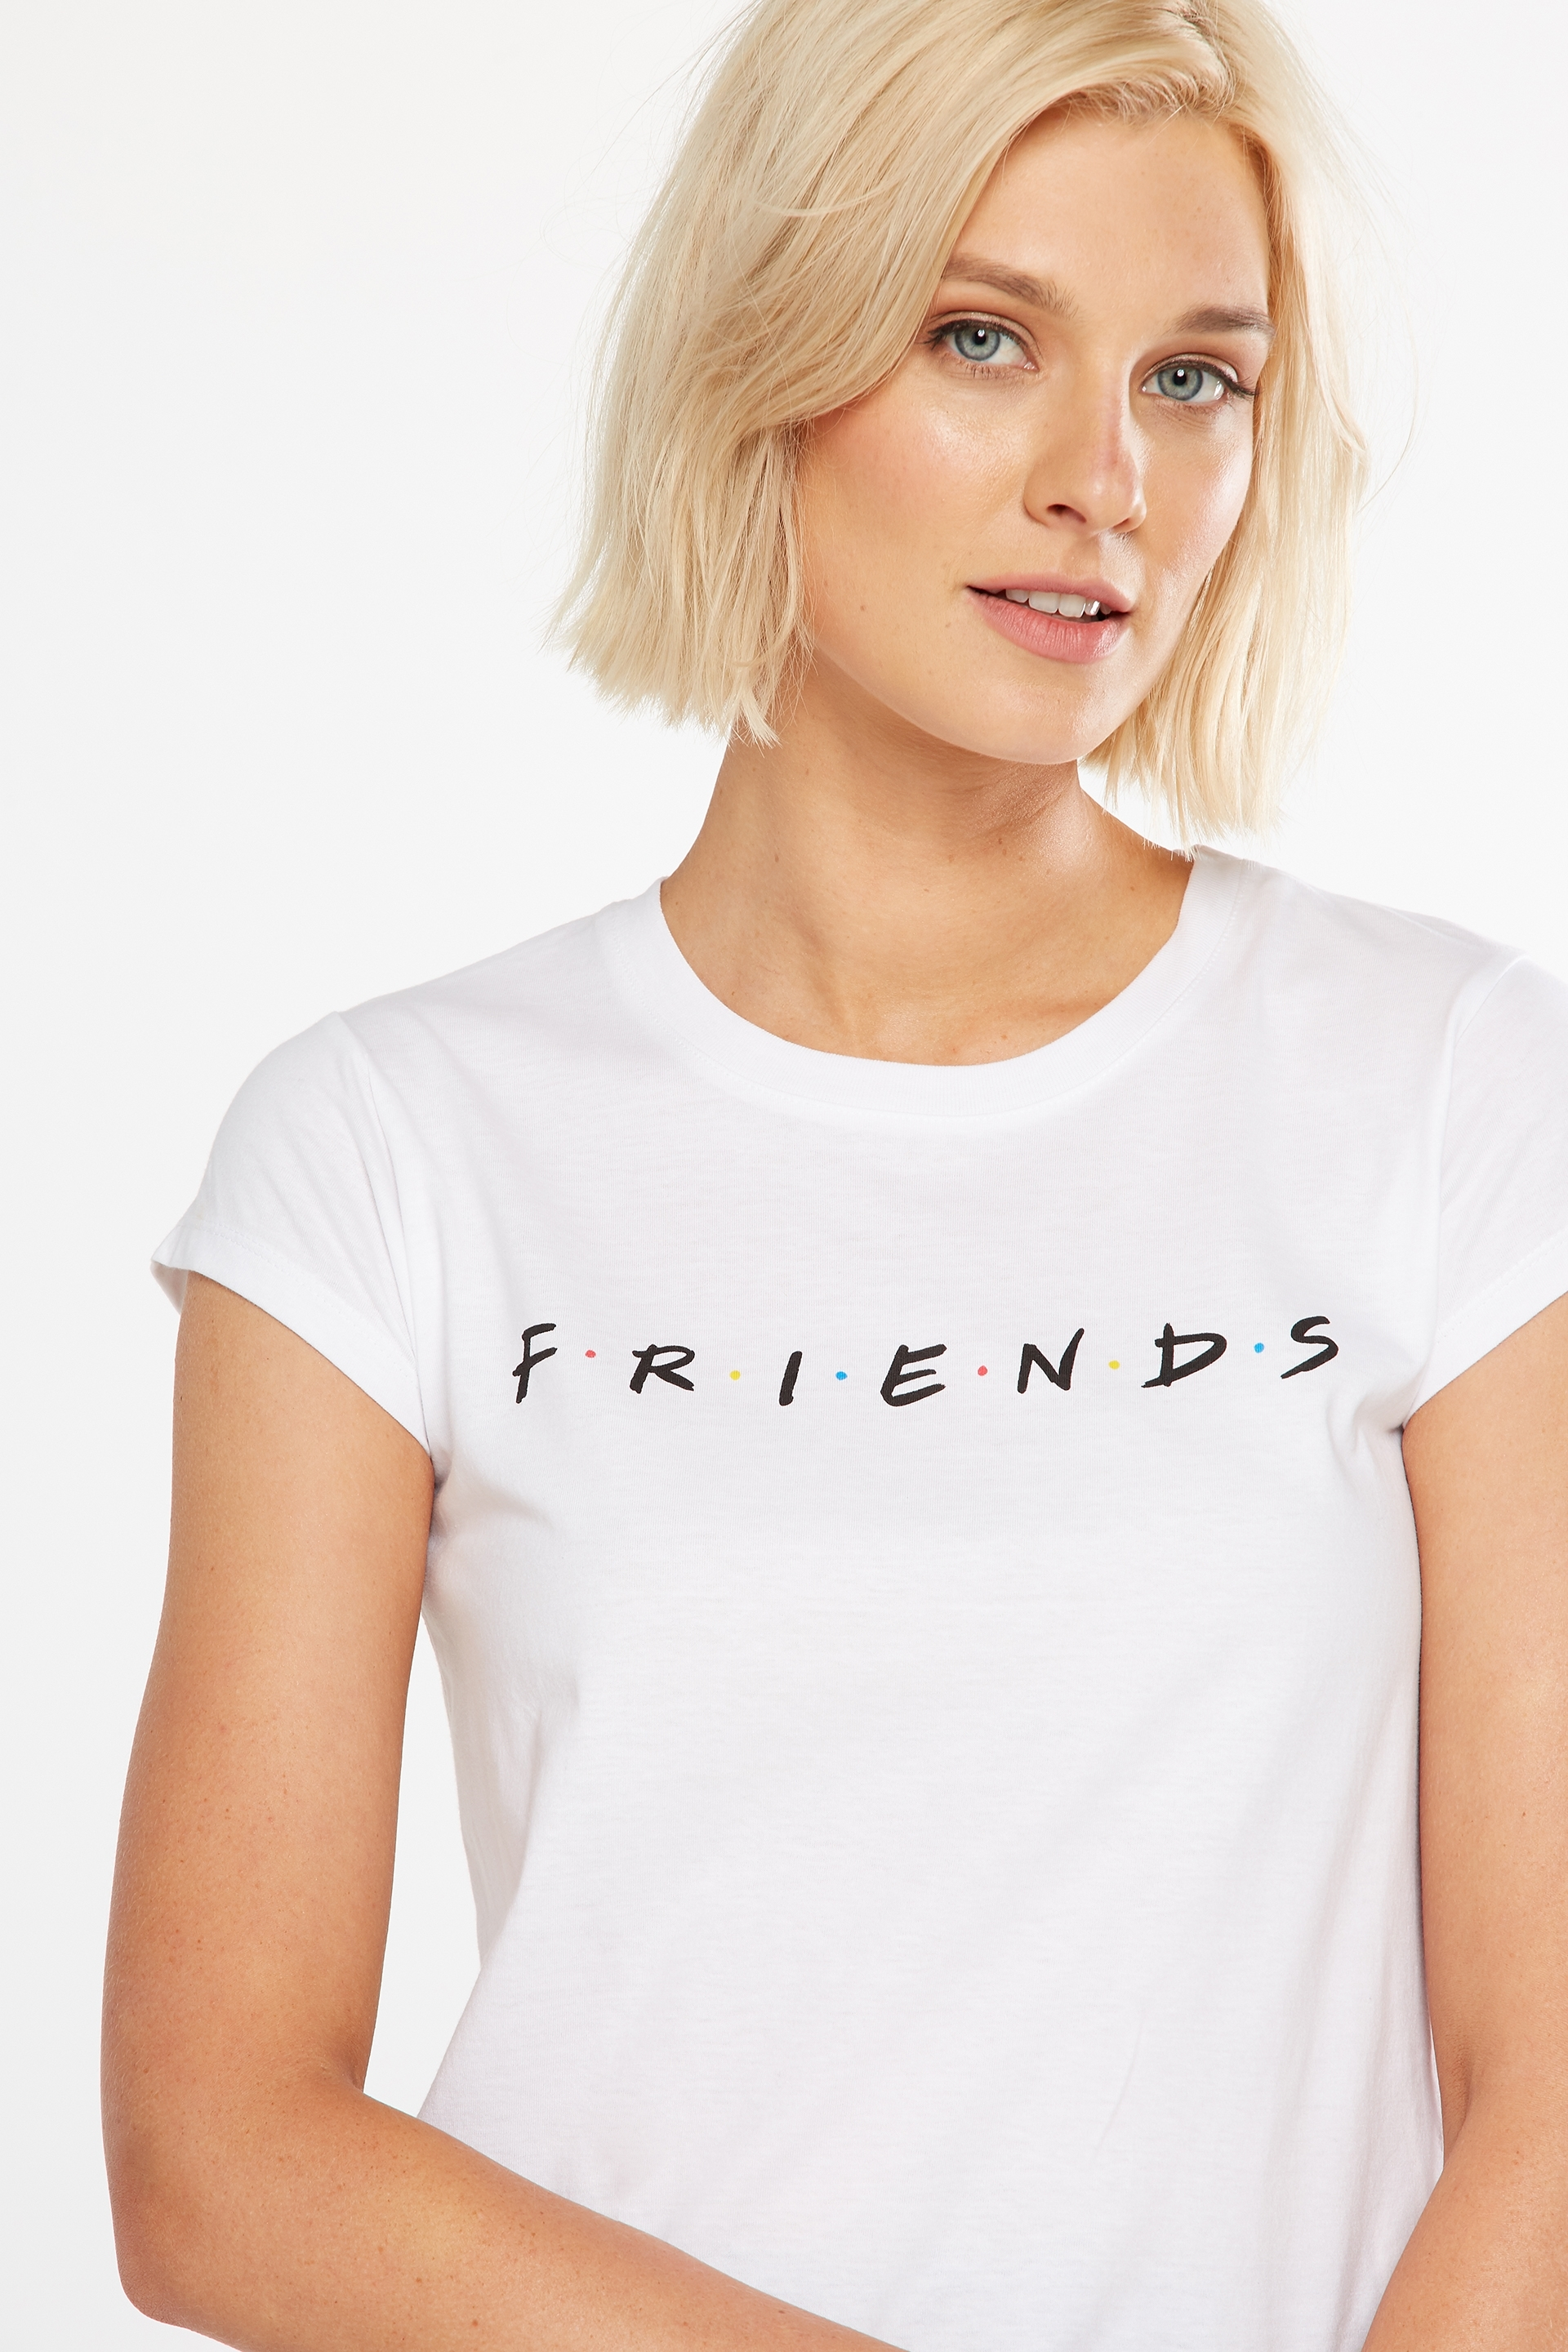 7d0f28130 ... Tbar Friends Graphic Tee, LCN FRIENDS/WHITE ...